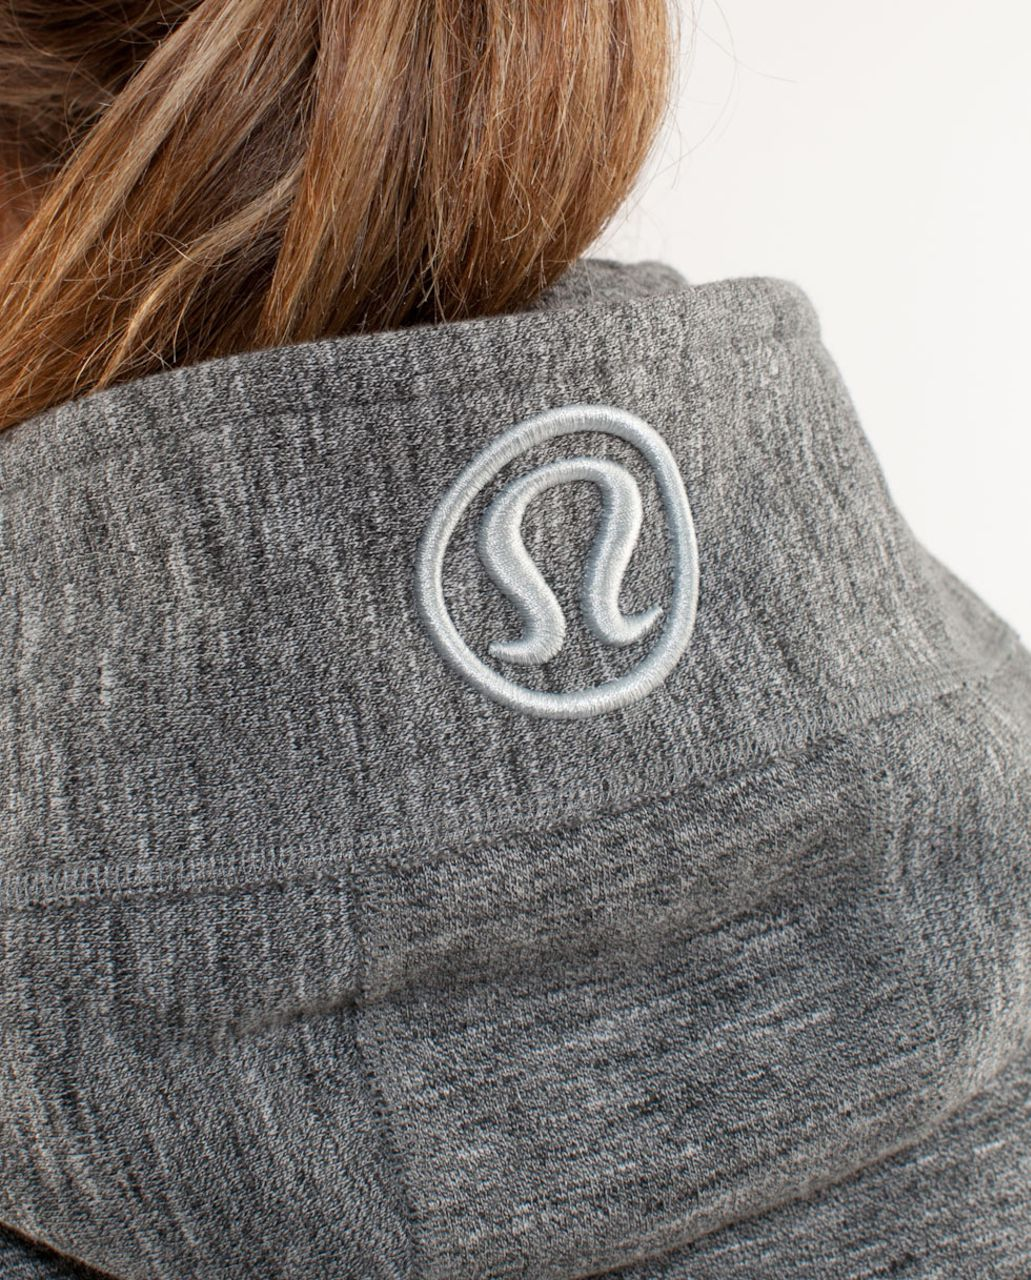 Lululemon Scuba Hoodie - Deep Coal Silver Spoon Slub Salt & Pepper